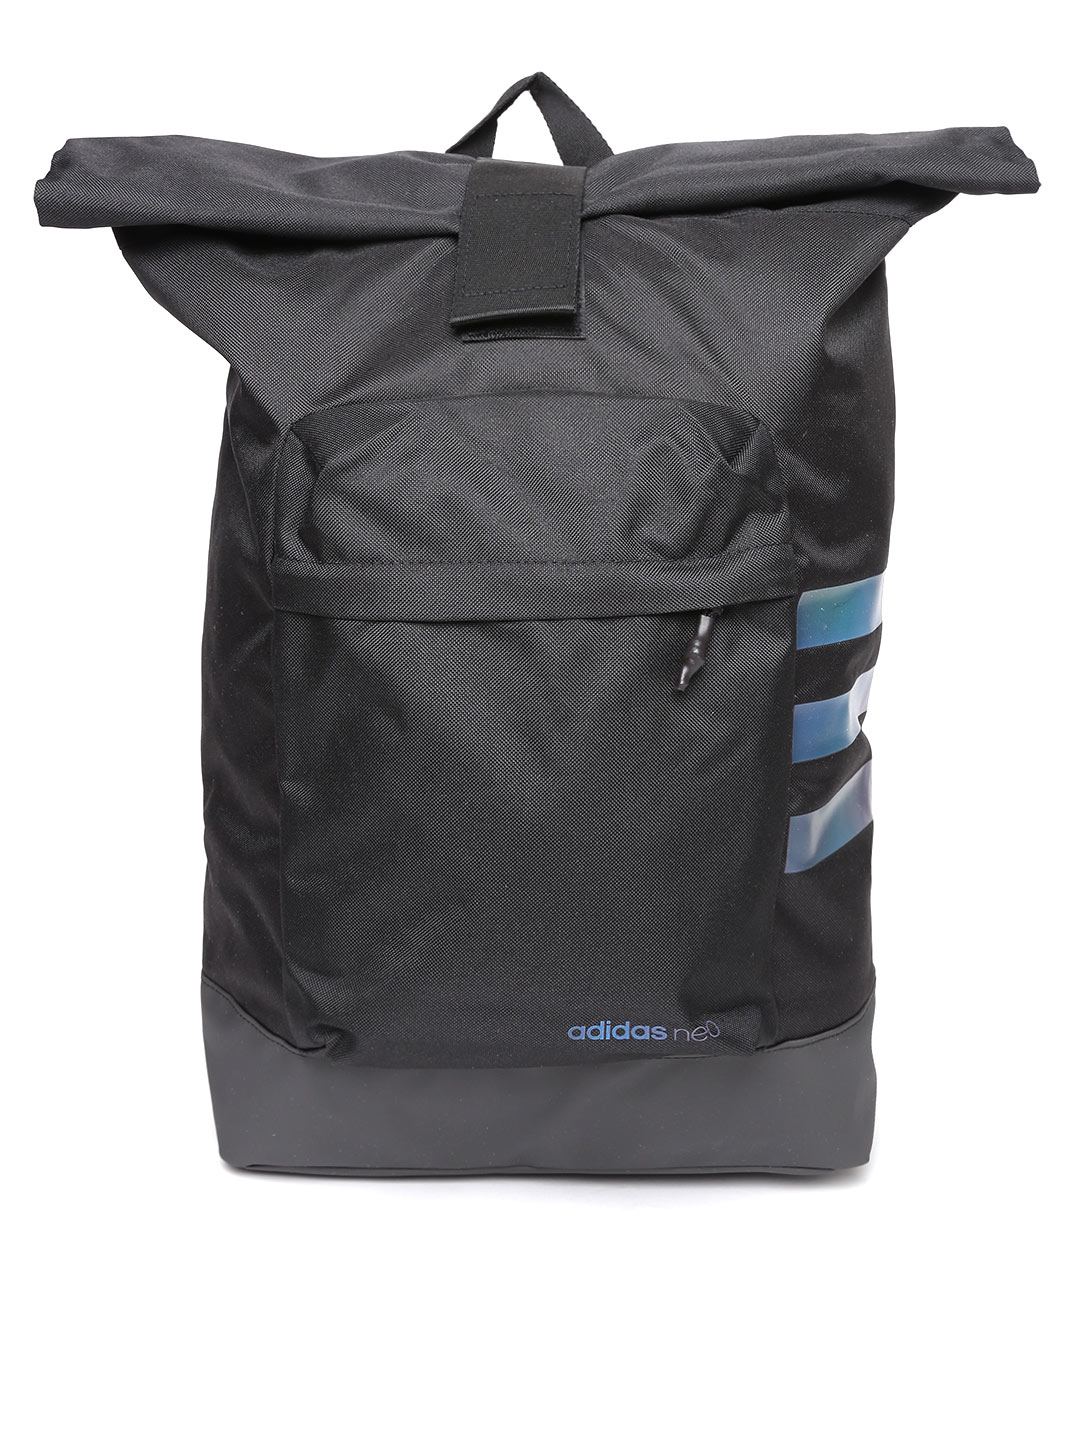 c8cfaf86cc68 adidas Backpacks - Buy adidas Backpacks Online in India